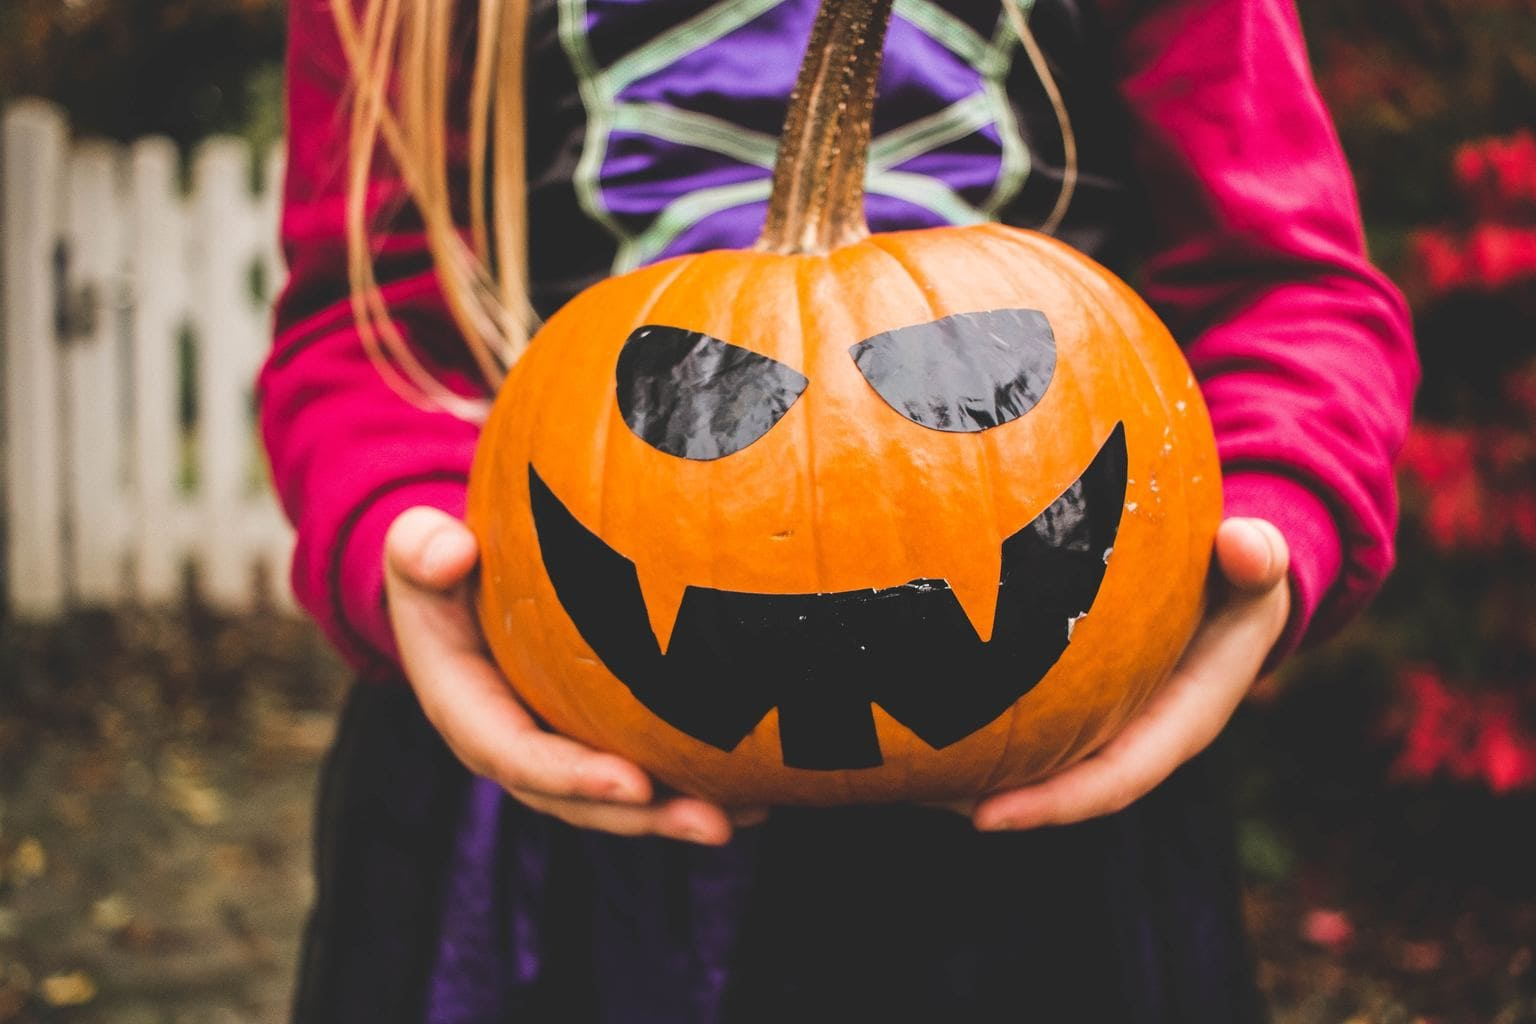 Halloween makeup: Photo of a girl holding a pumpkin painted with a jack o lantern face